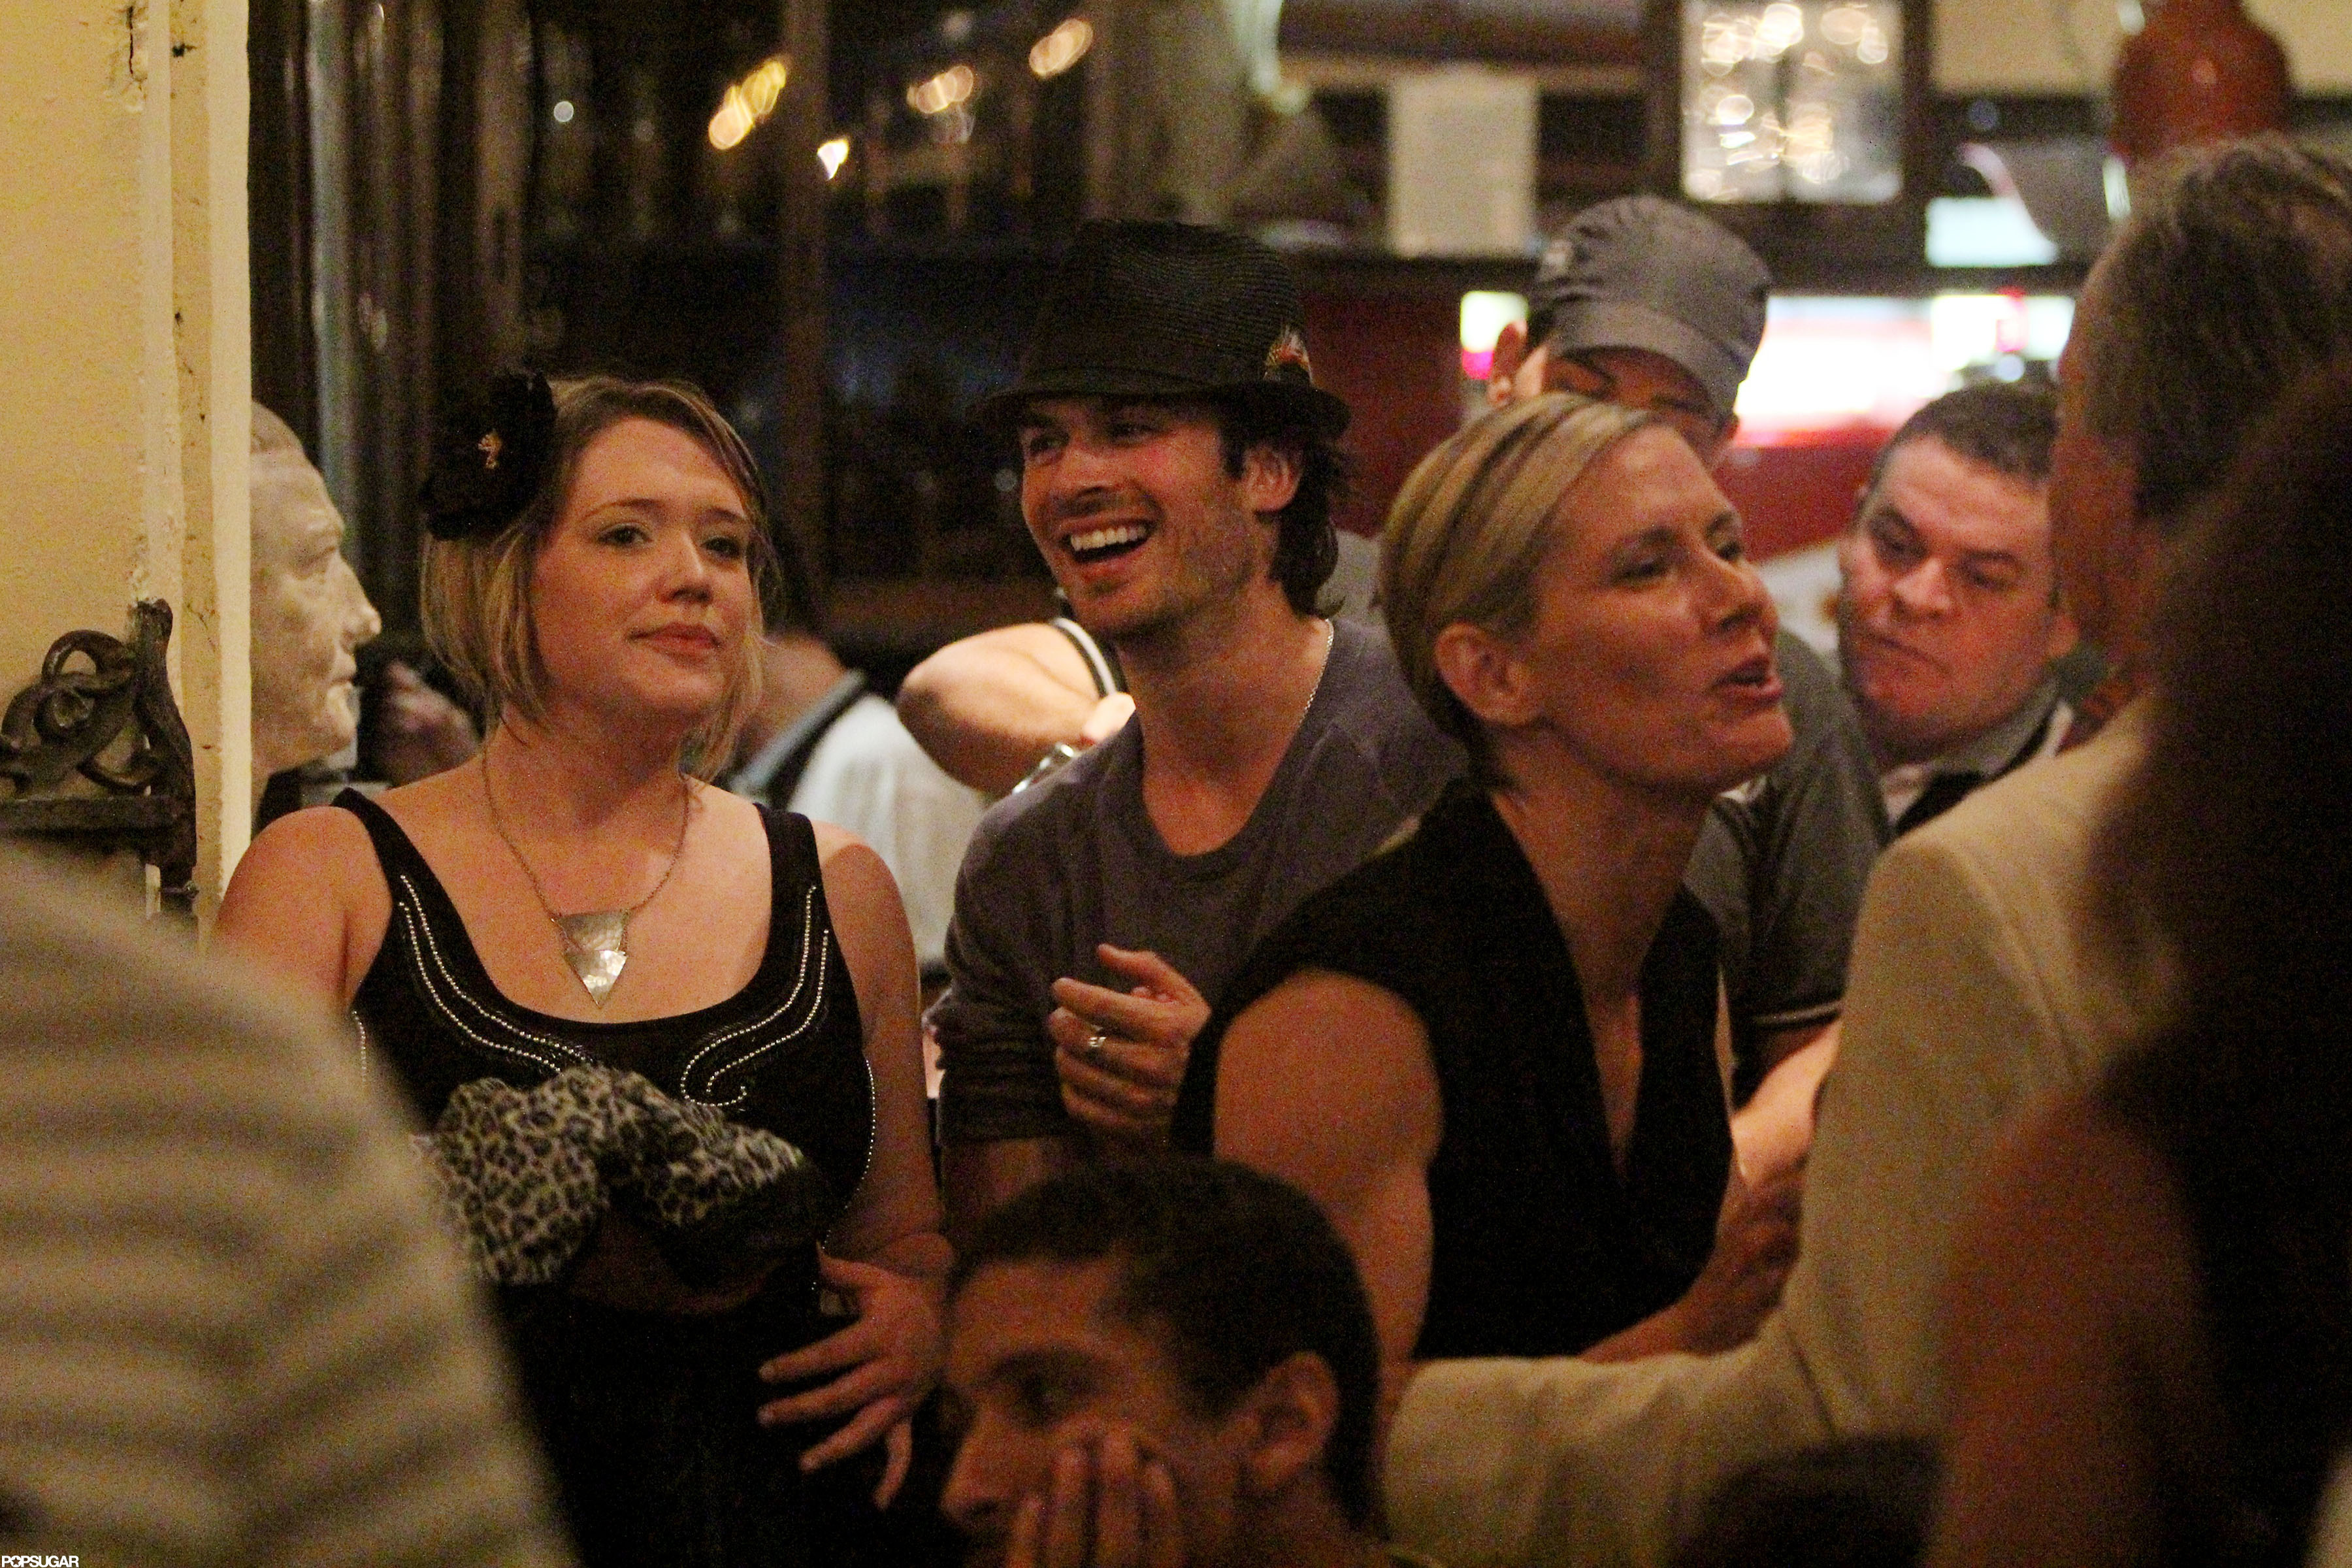 Ian Somerhalder let loose with friends at Rio de Janeiro's Scenarium bar during a June 2012 trip.